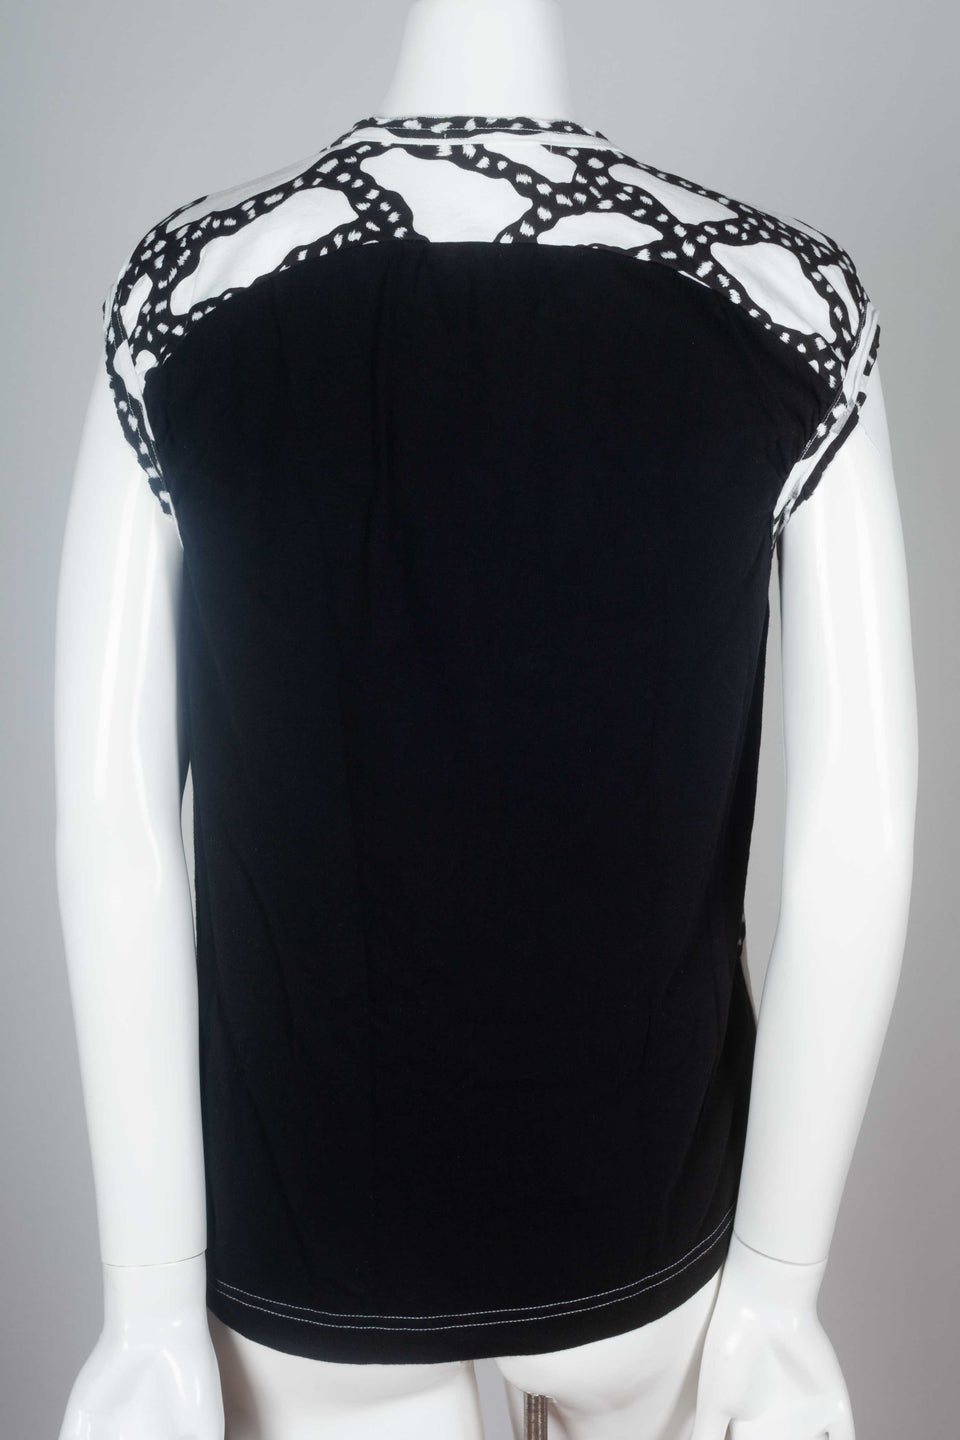 Black back of this Comme des Garçons 2010 black and white sleeveless t-shirt with sinuous graphic design.